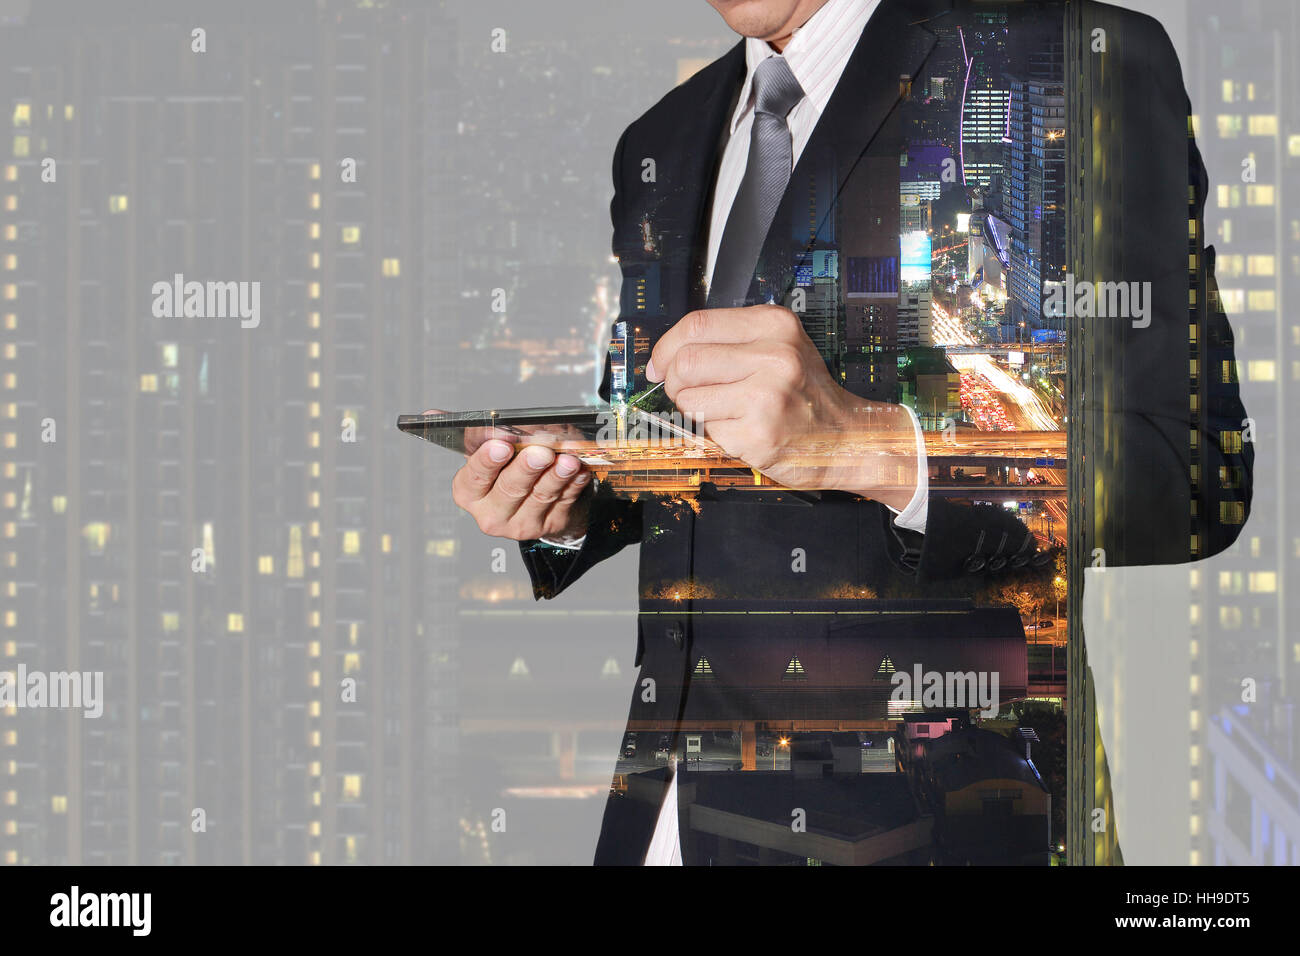 Double exposure of businessman working with tablet,  night city and night street - Stock Image